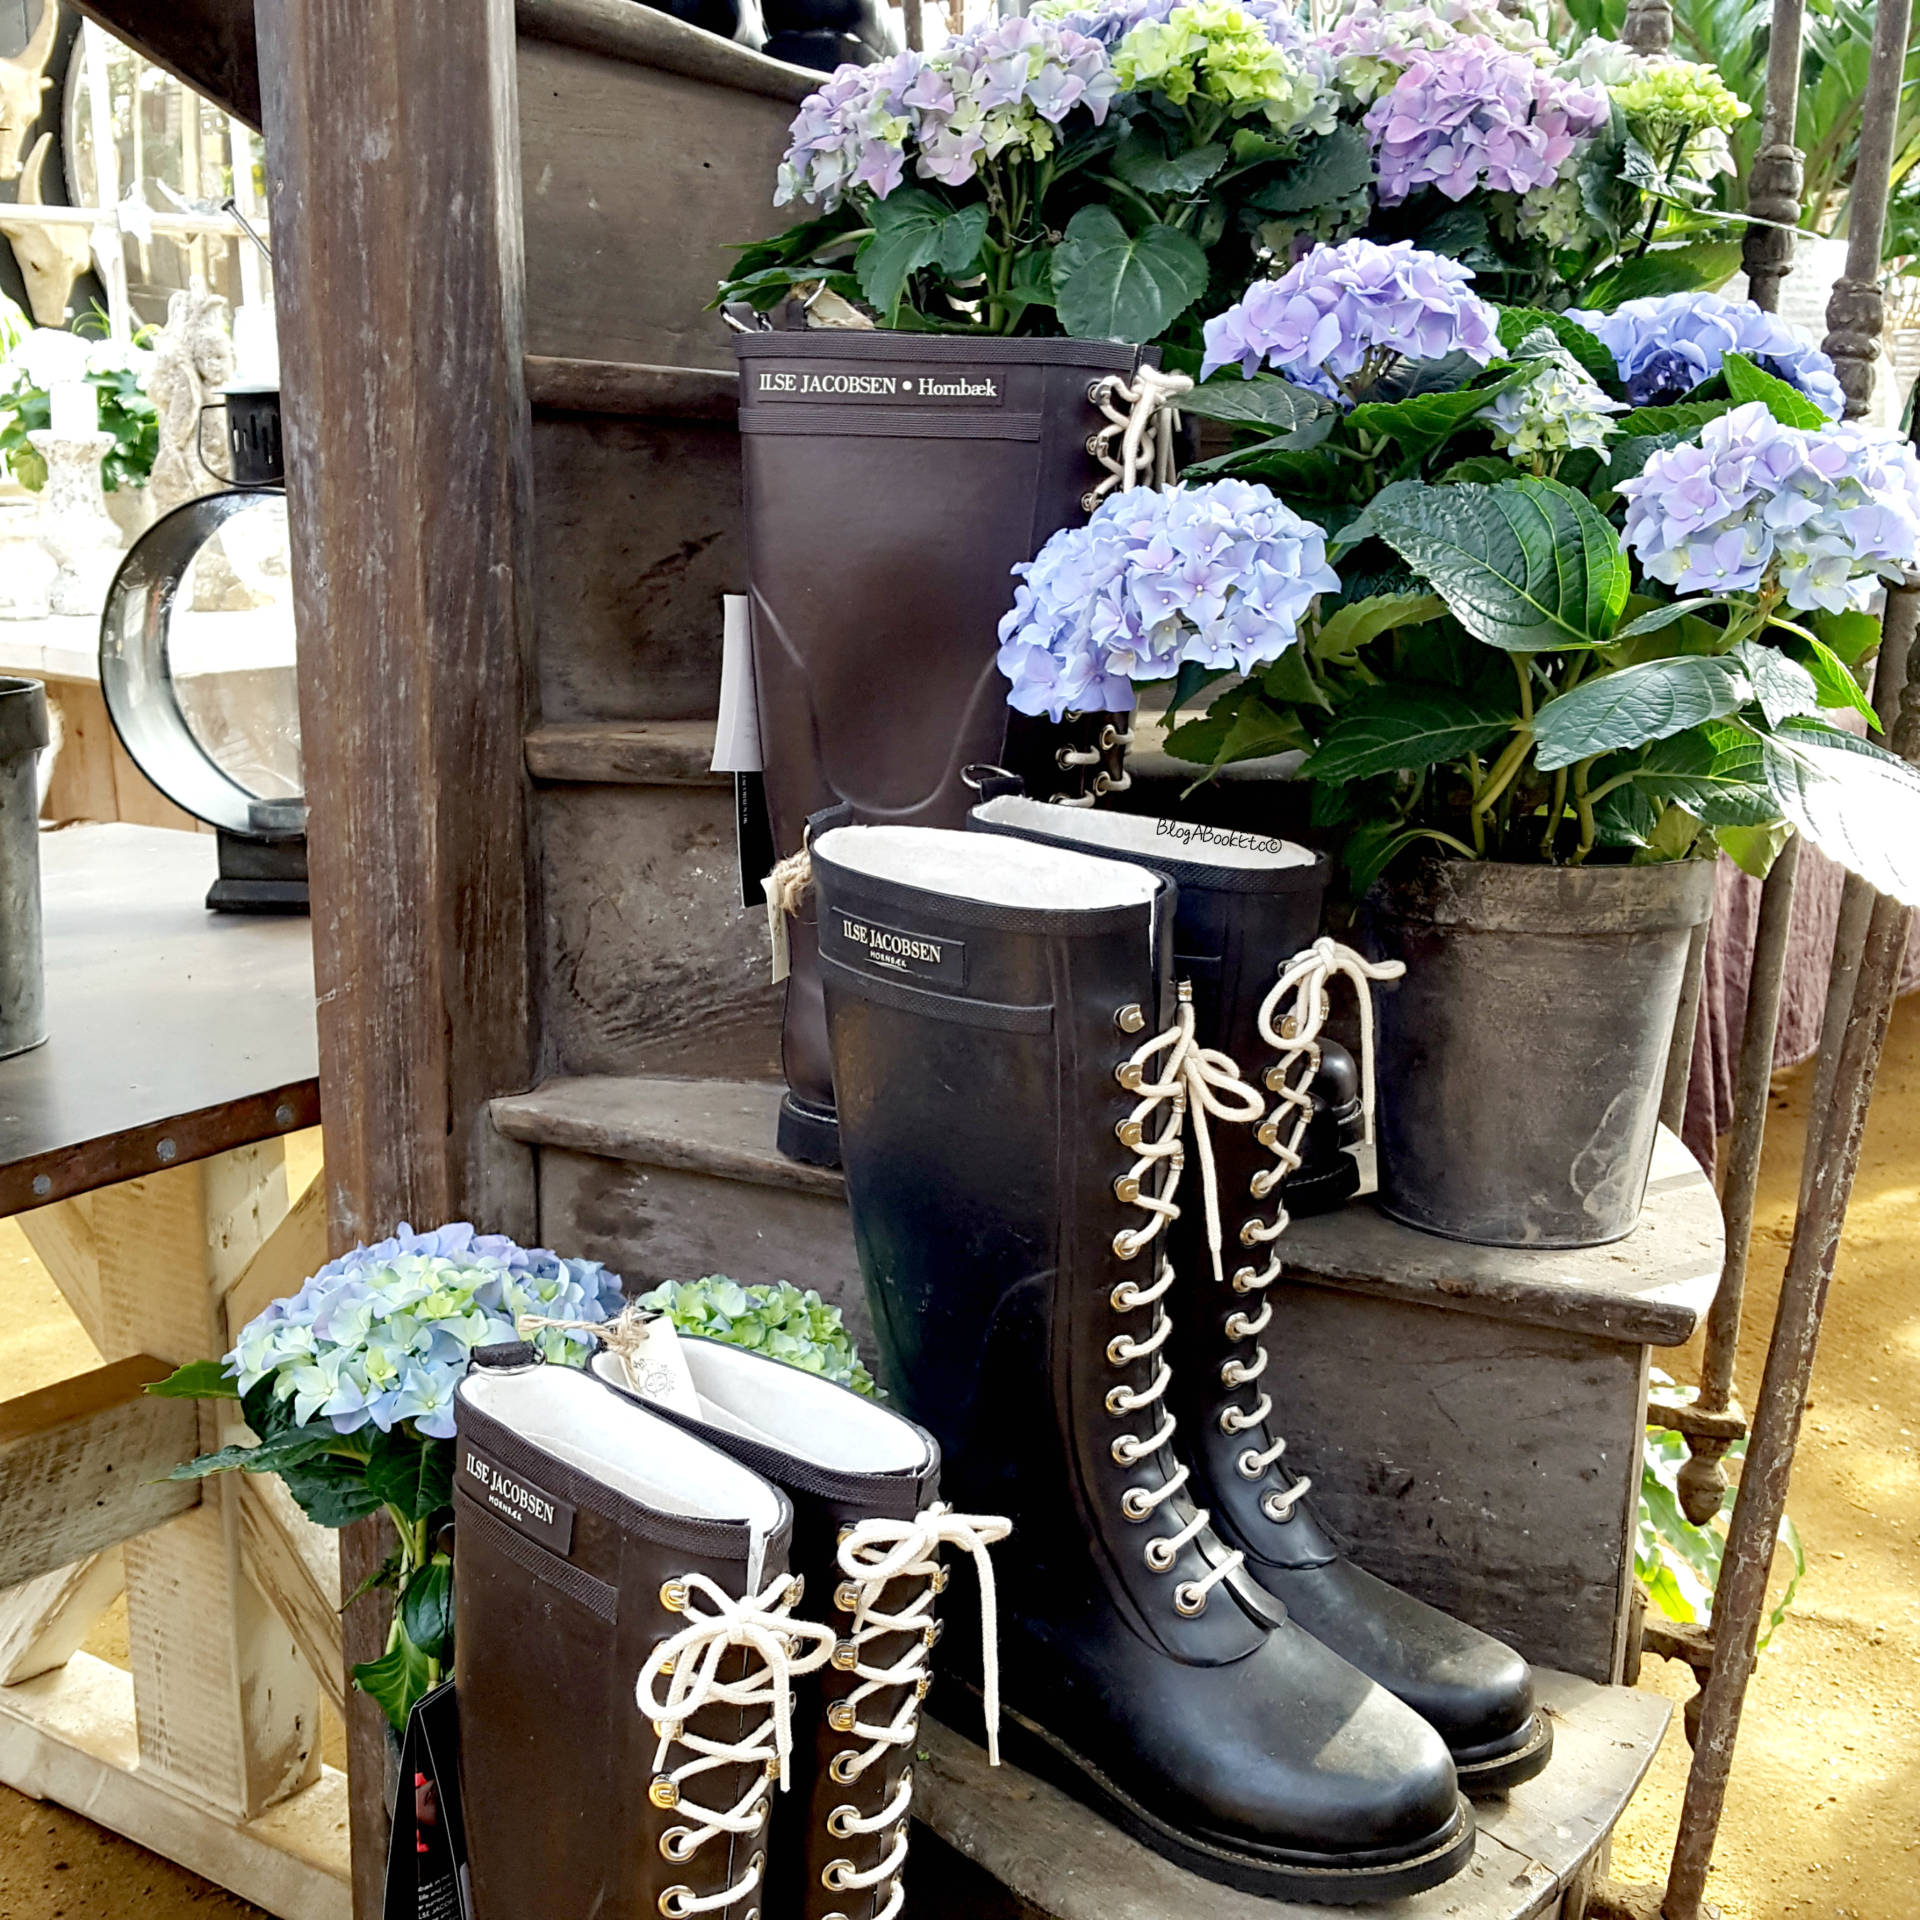 Petersham Nurseries, Petersham, Richmond, London, Surrey, Flowers, Plants, Succulents, Cacti, Cactus, Bedding Plants, Nurseries, Garden, Gardening, Summer, Hydrangea, Wellington Boots, Wellies, Blooms, Bunches, Beautiful, Beauty, Blogger, Life, Lifestyle, Blog A Book Etc, Fay